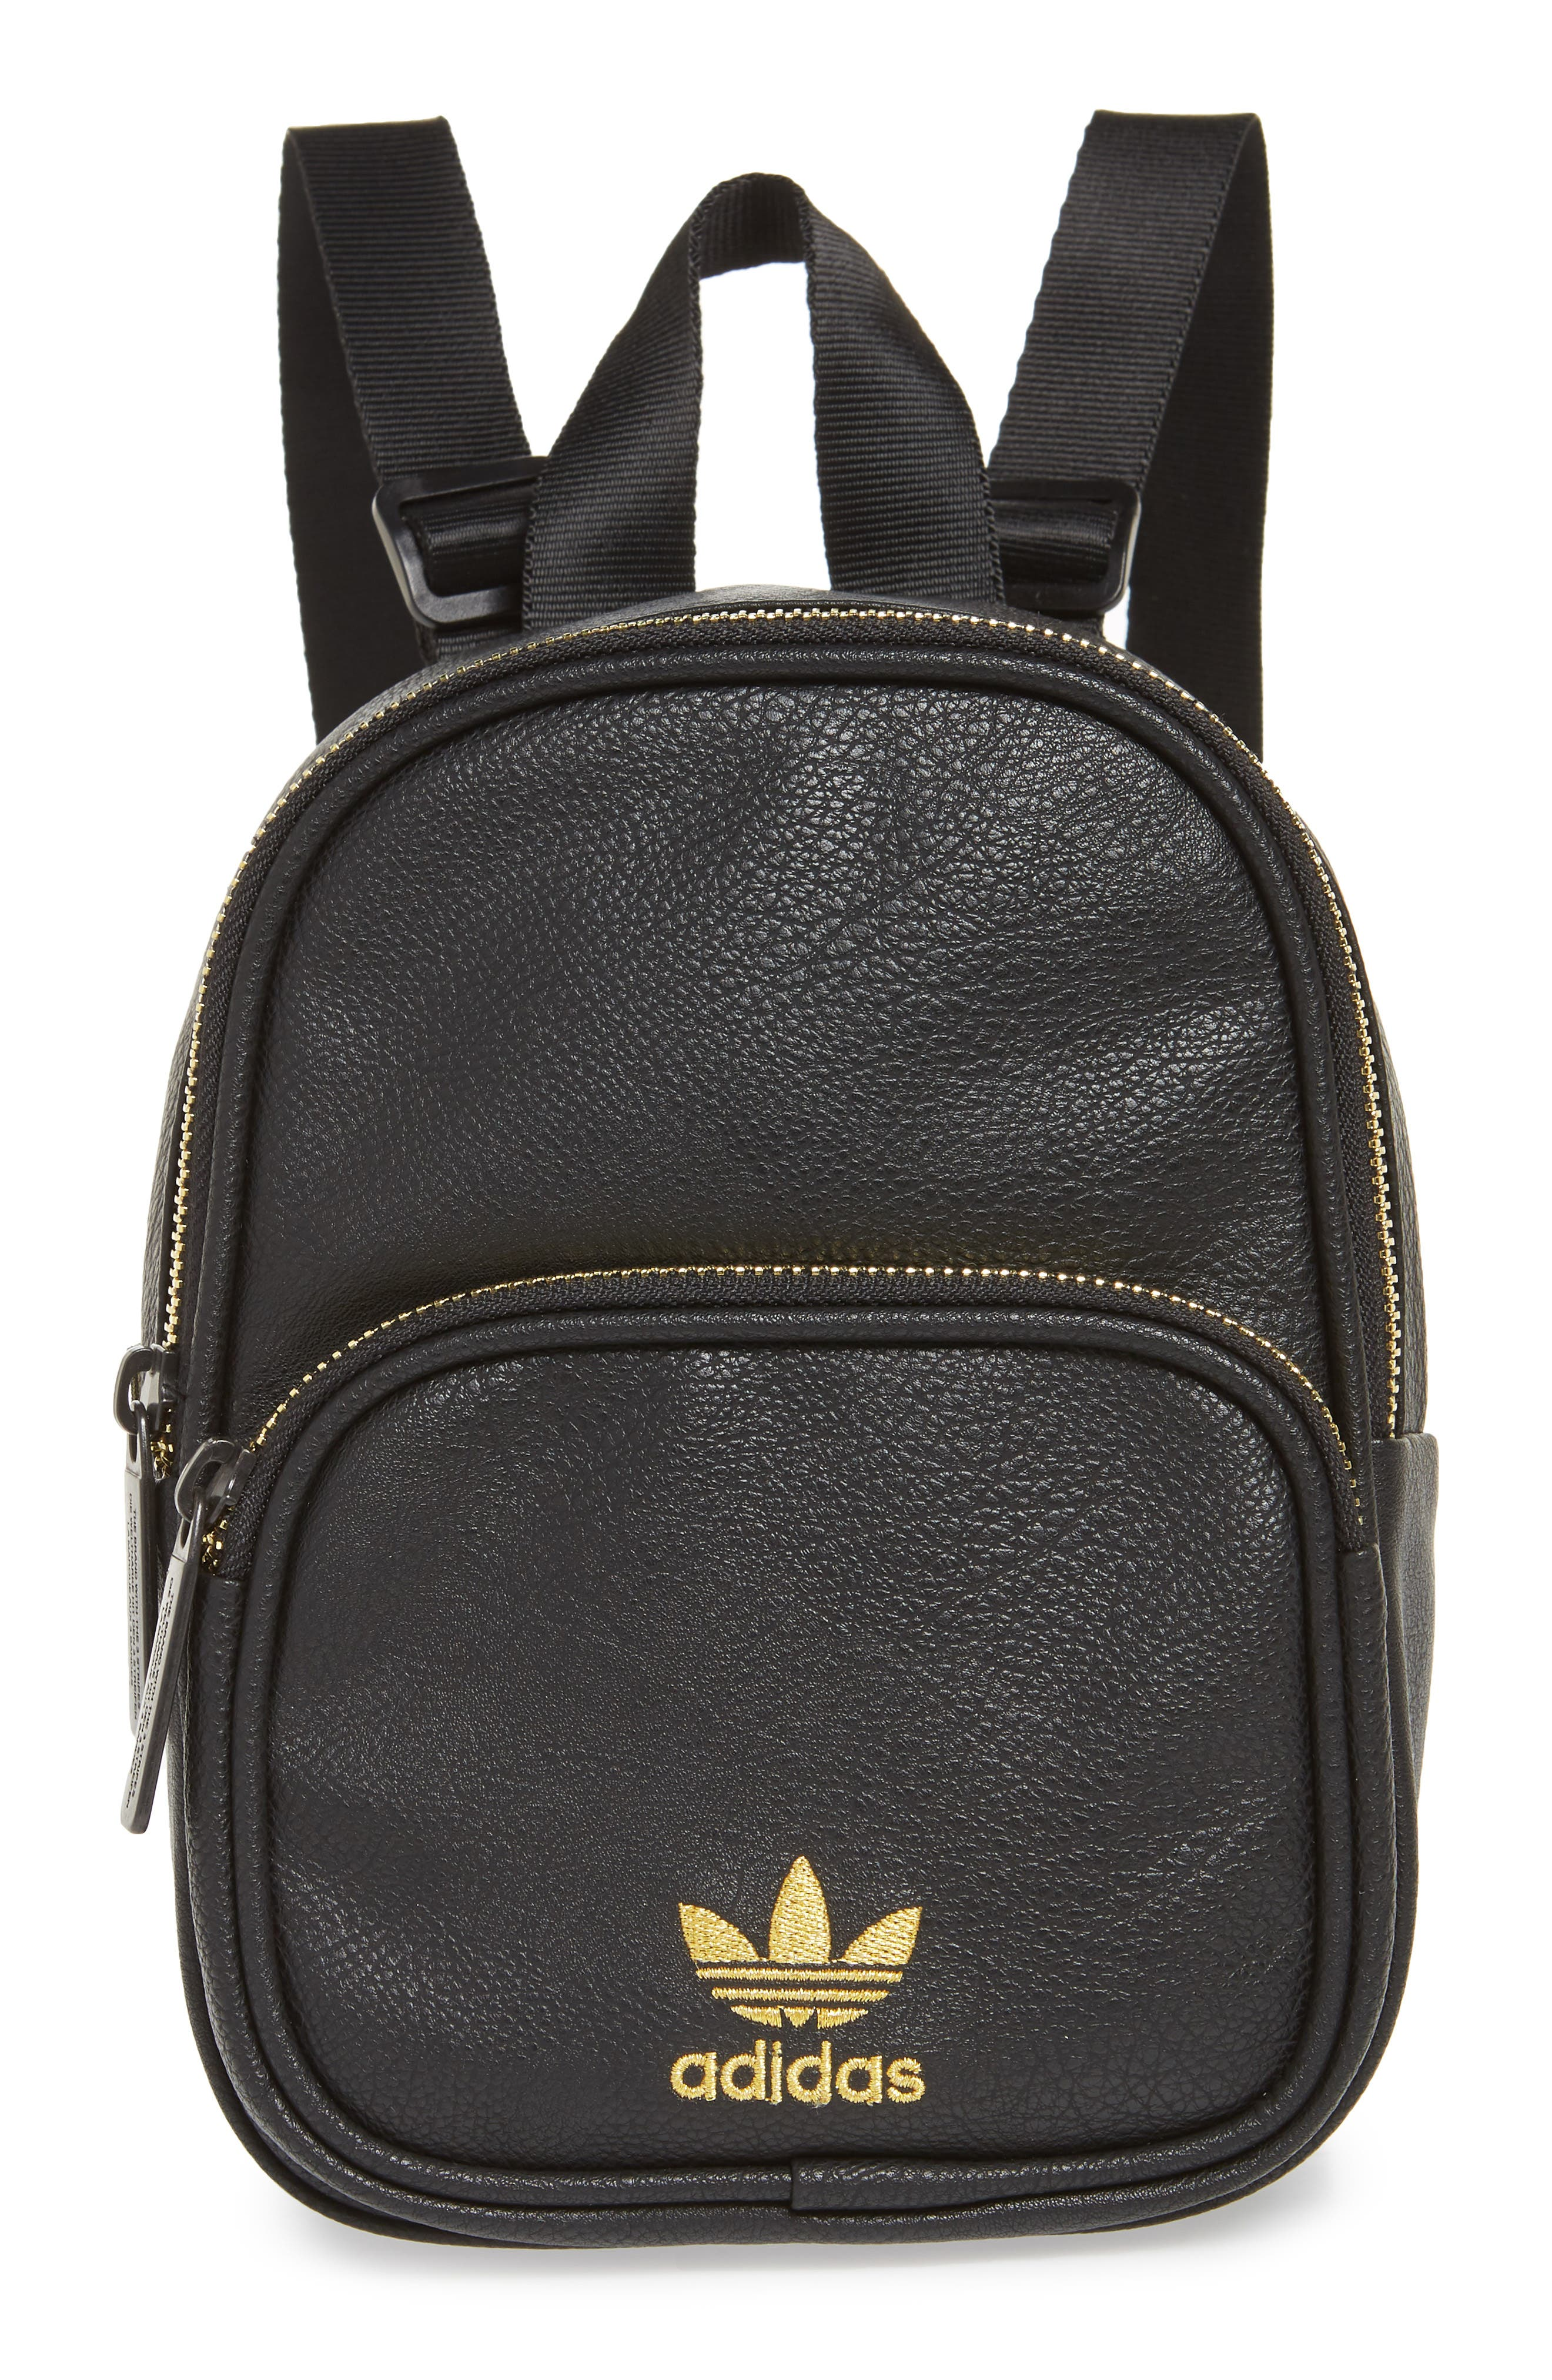 Adidas Originals Mini Faux Leather Backpack - Black